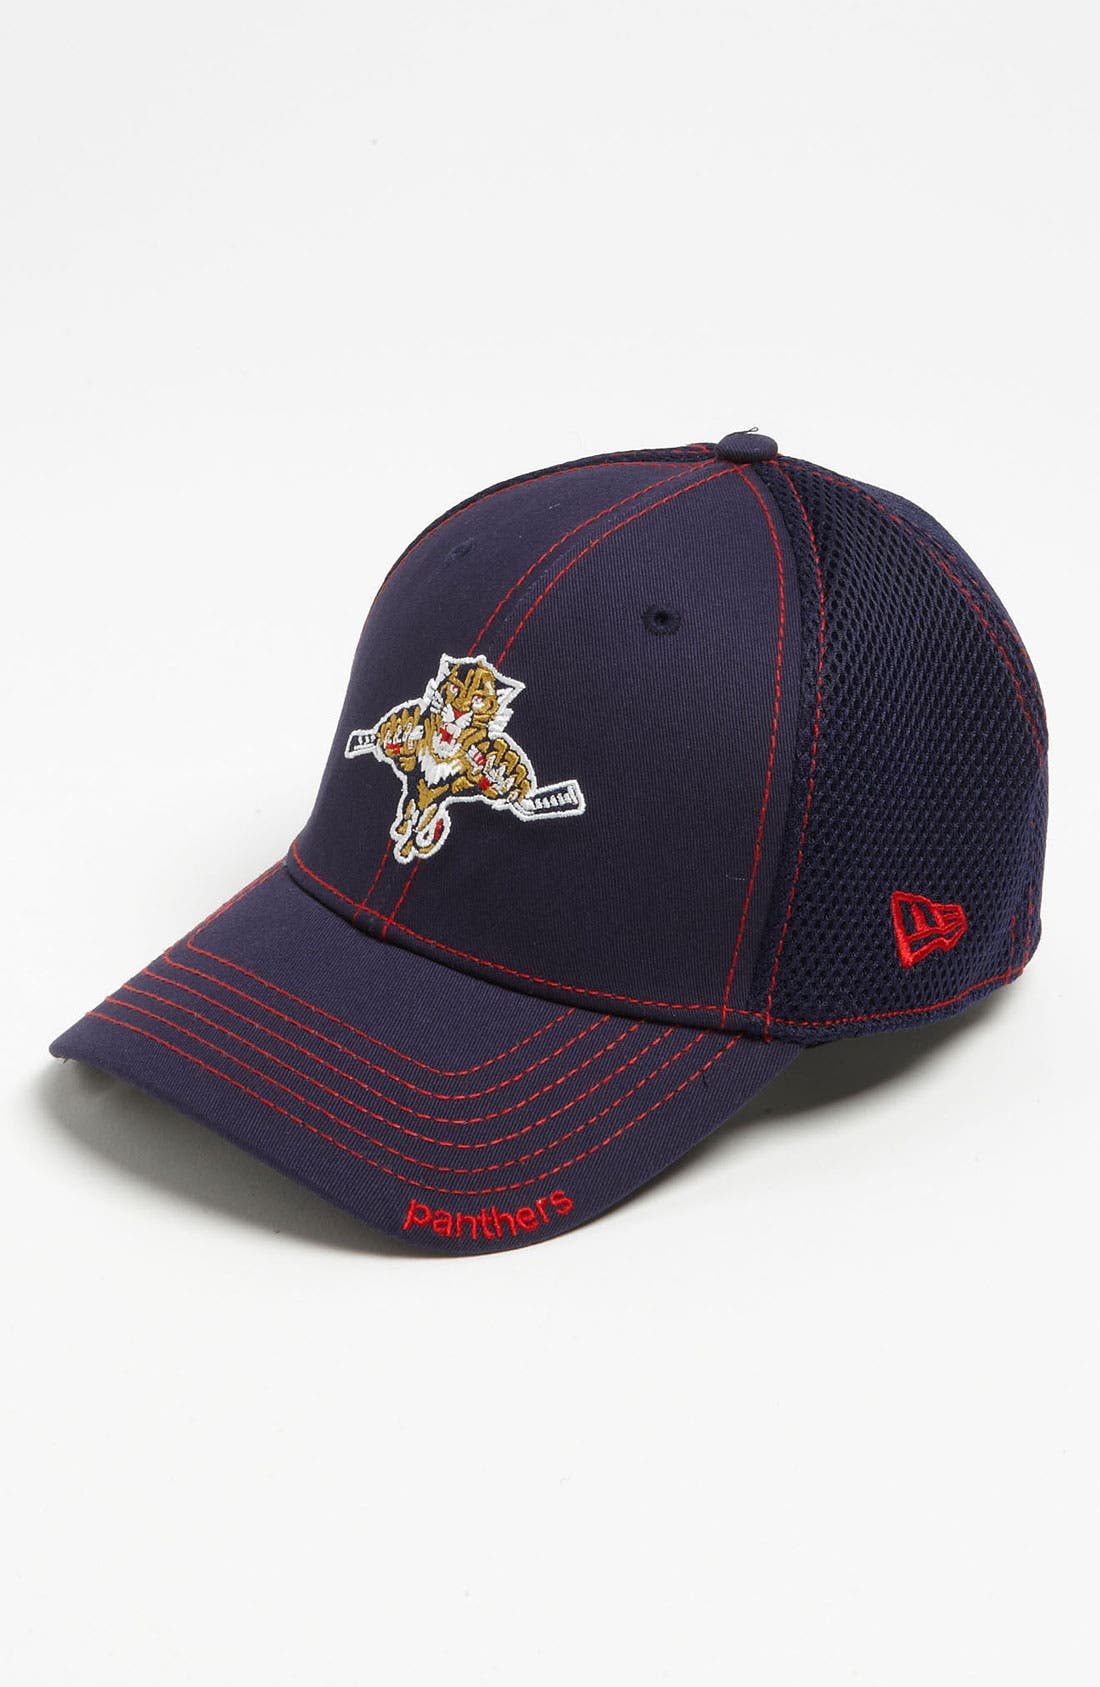 Main Image - New Era Cap 'Neo - Florida Panthers' Baseball Cap